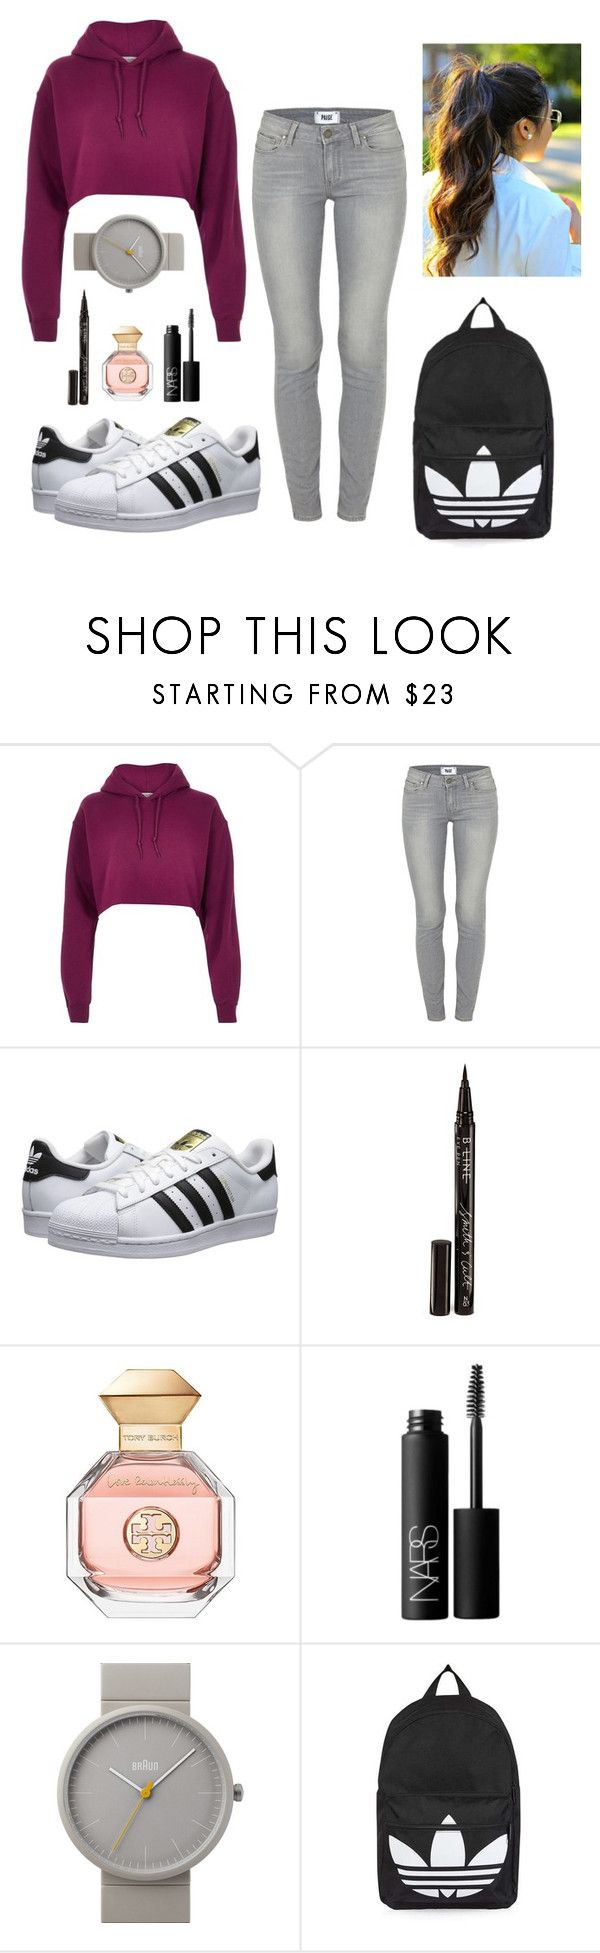 """""""Cool Baby..."""" by stacy971 ❤ liked on Polyvore featuring River Island, Paige Denim, adidas Originals, Smith & Cult, Tory Burch, NARS Cosmetics, Braun and Topshop"""